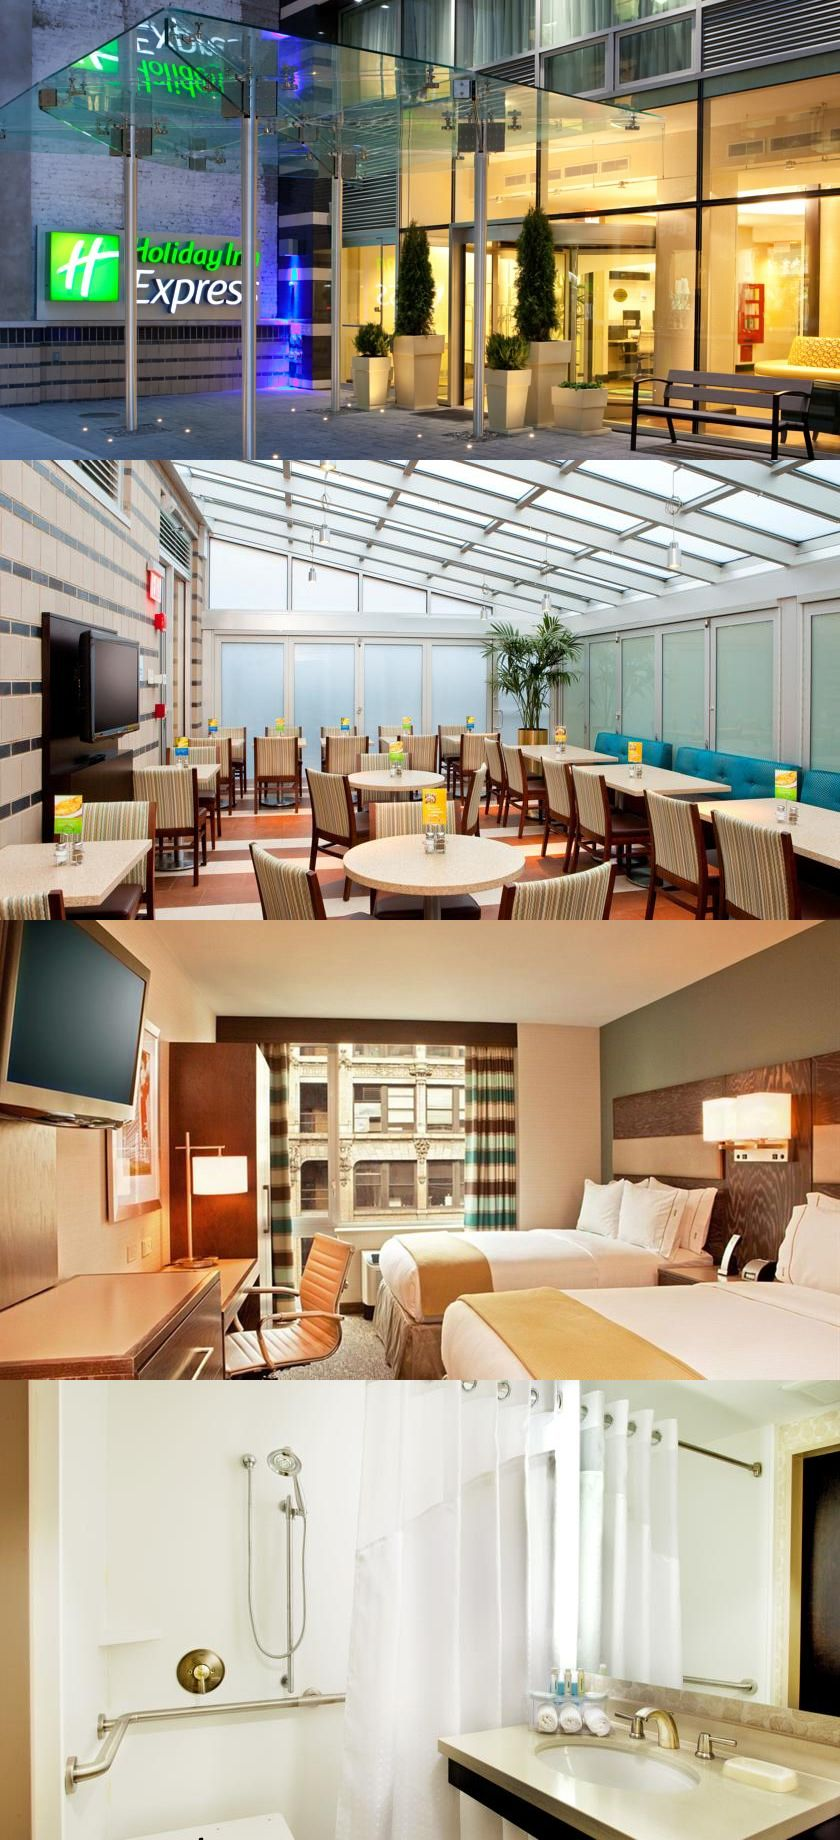 Pin By Find Hotel Deals On New York Hotels New York Hotels